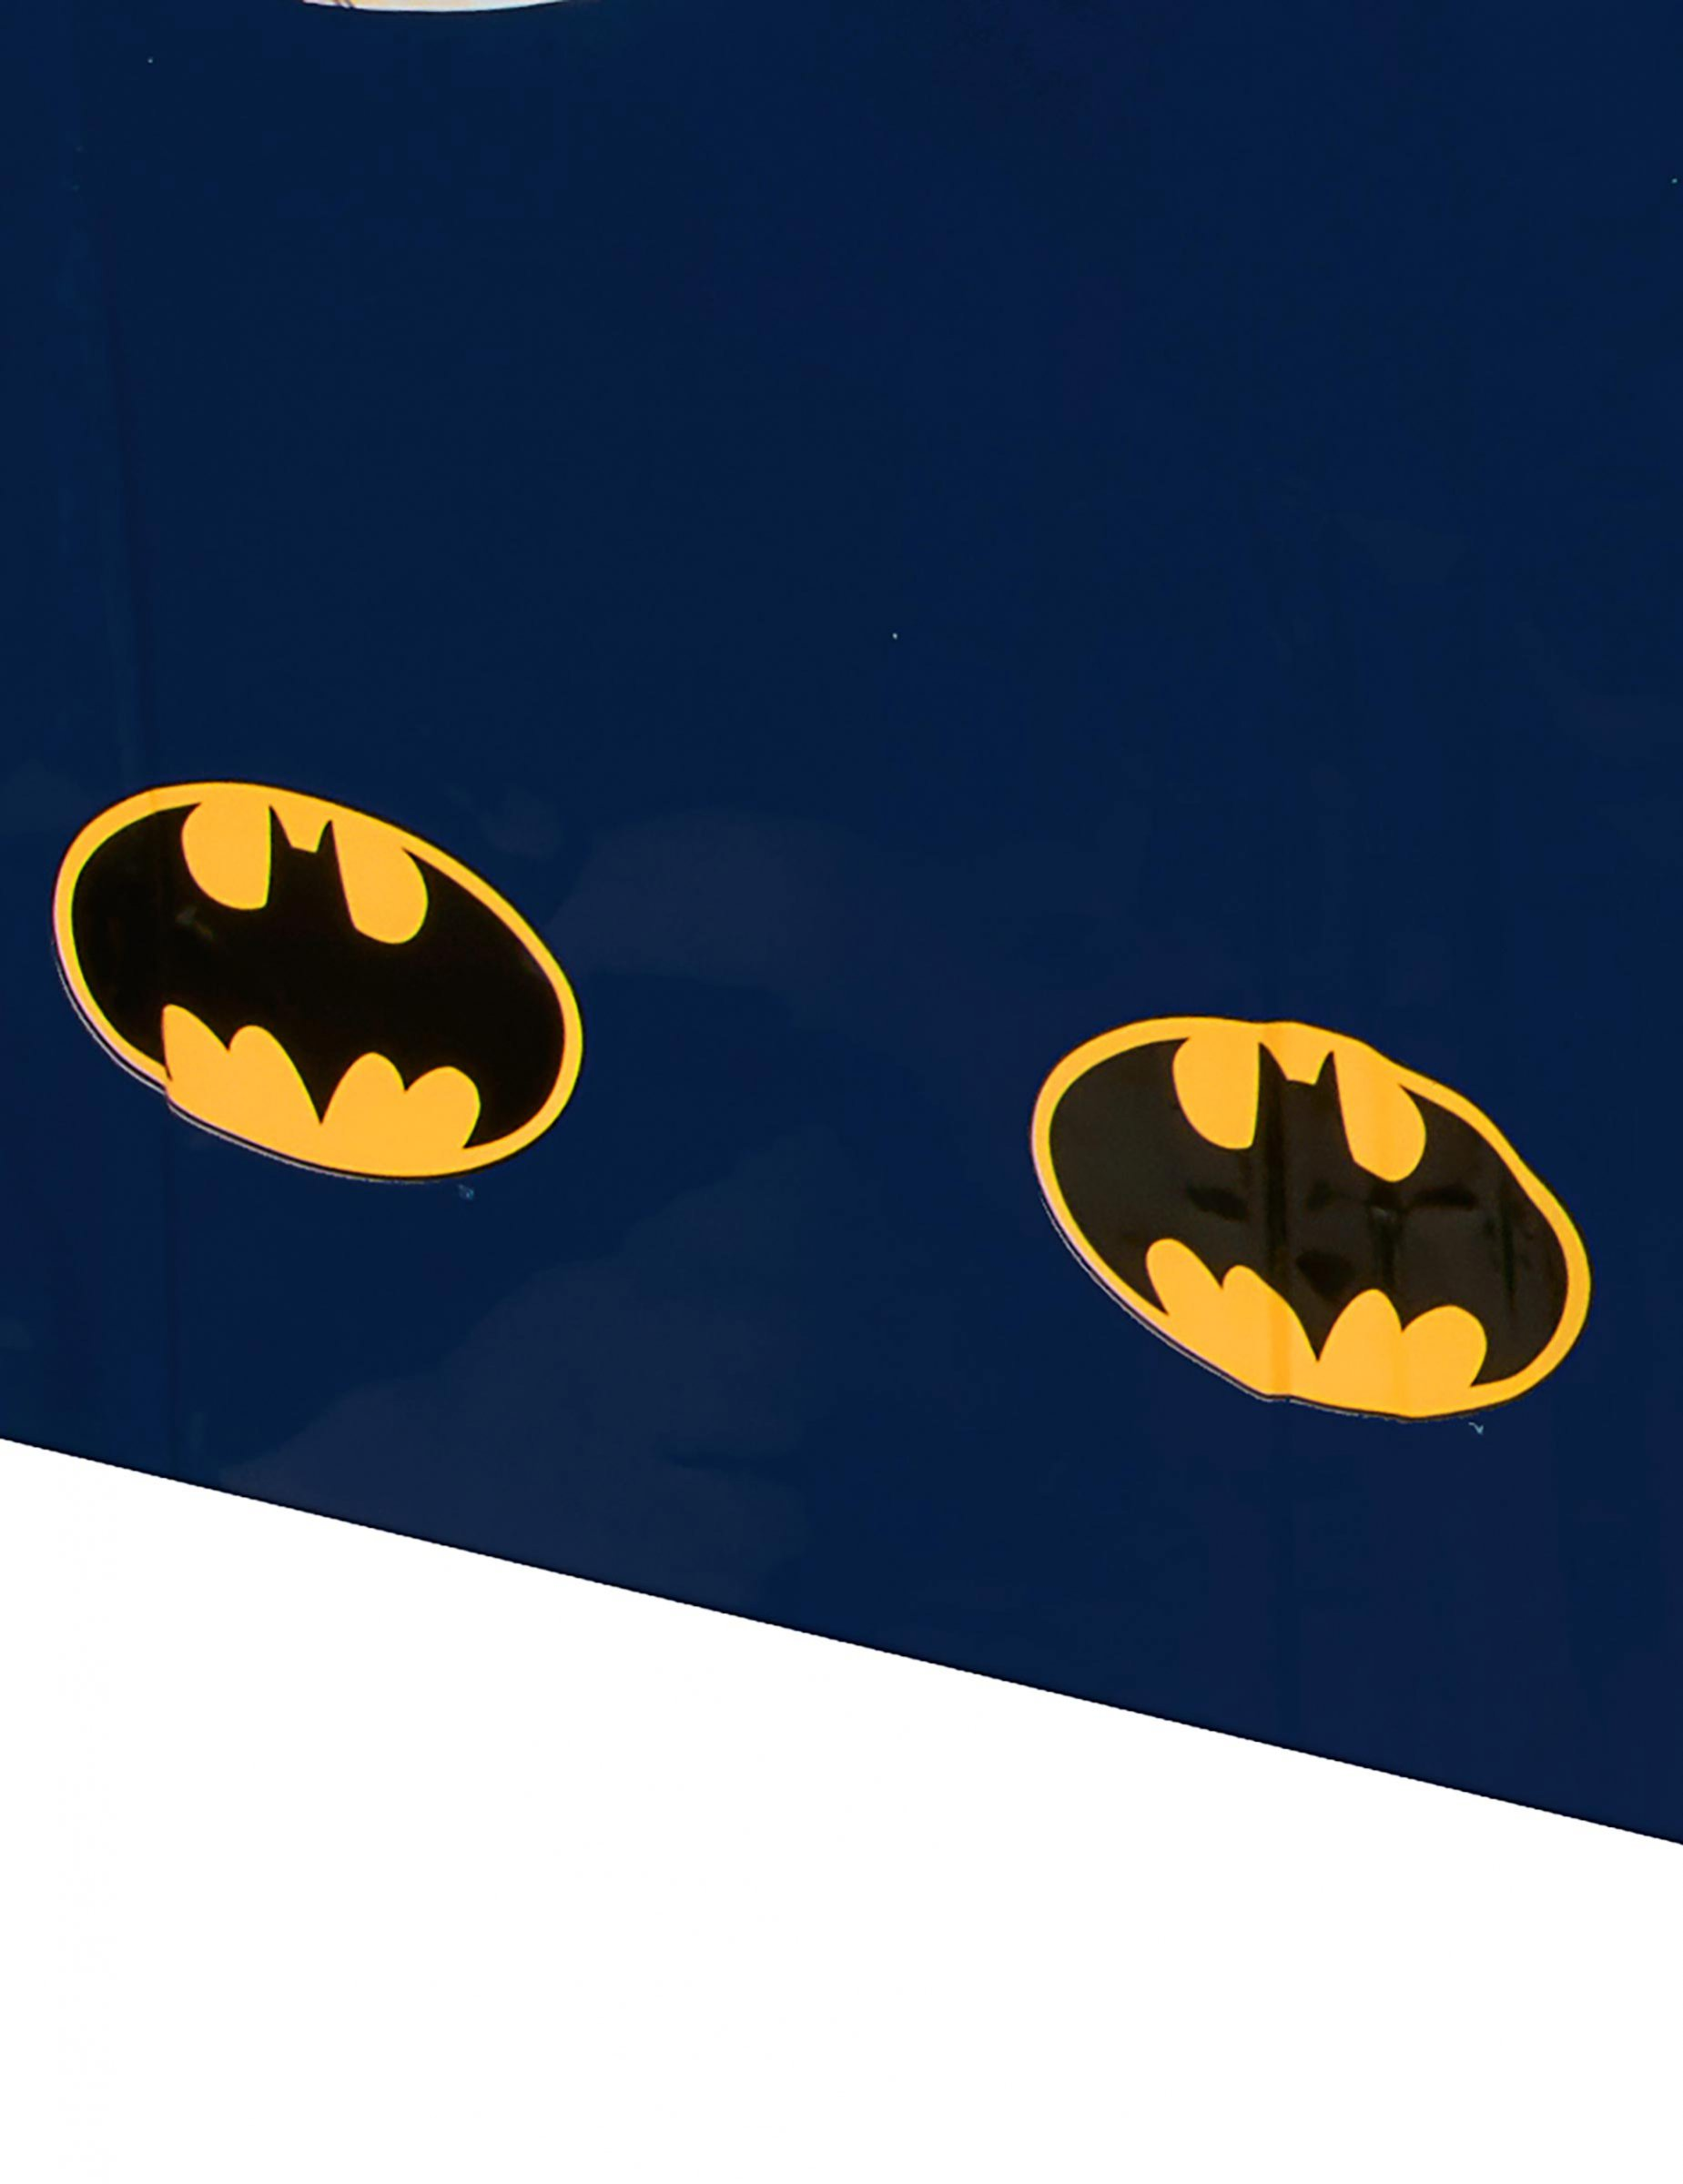 batman tischdecke aus plastik 180 x 130 cm partydeko und g nstige faschingskost me vegaoo. Black Bedroom Furniture Sets. Home Design Ideas